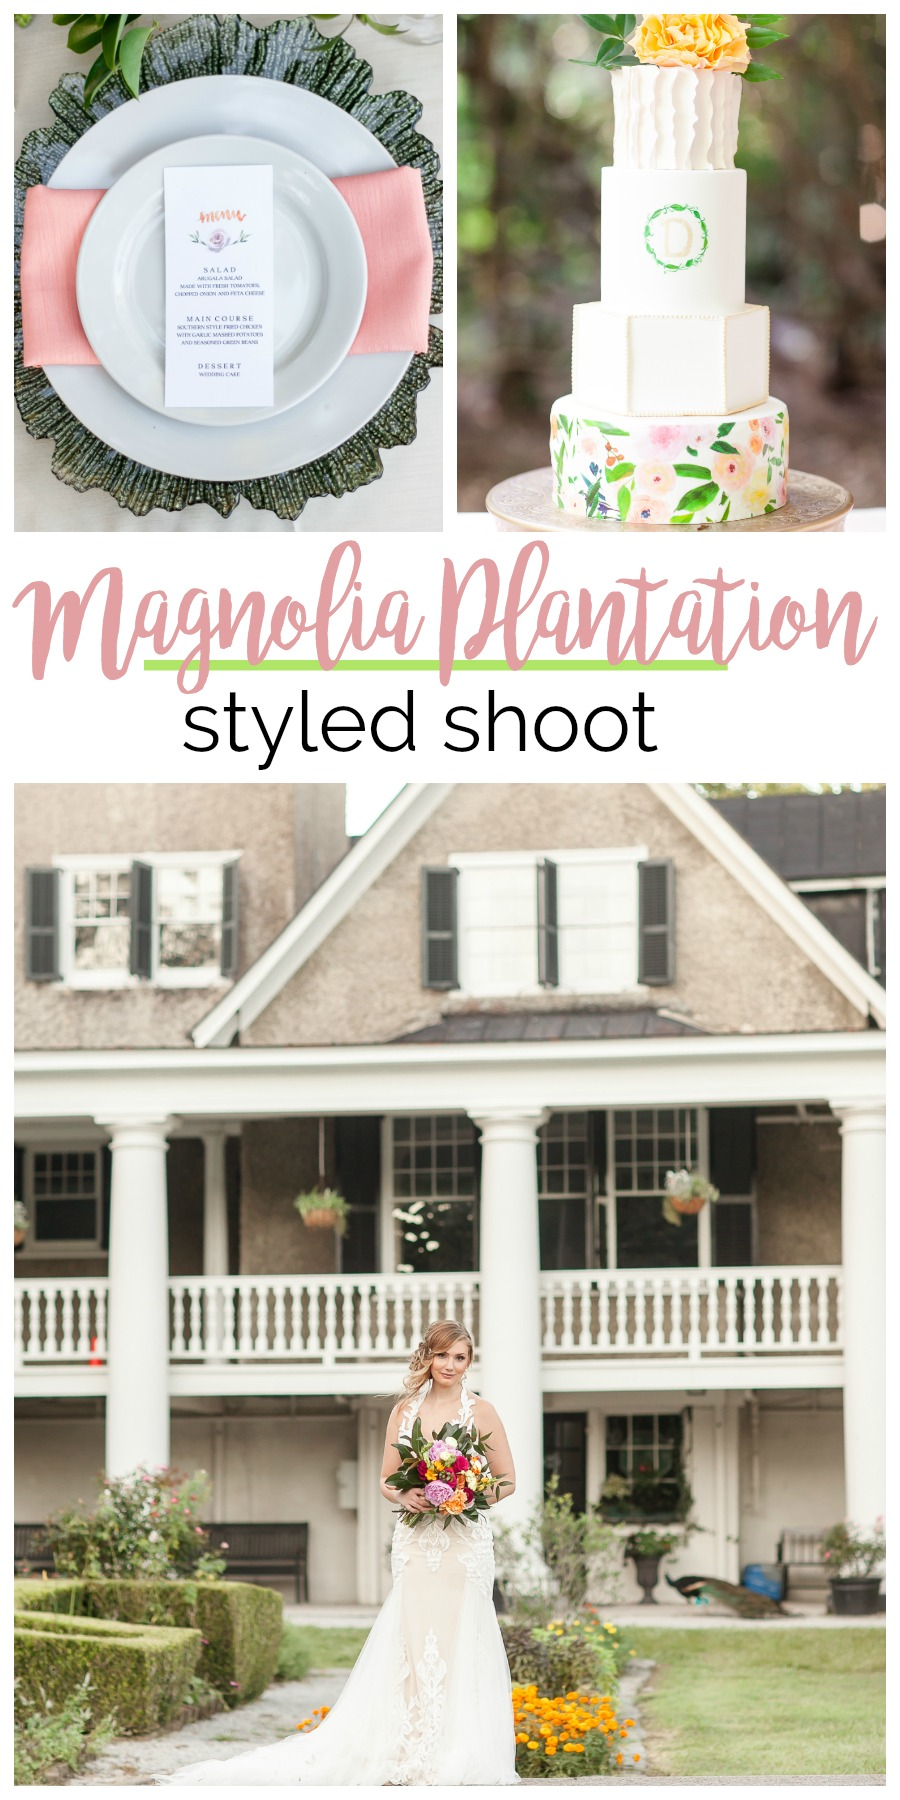 Wedding Inspiration: Magnolia Plantation Styled Shoot, Charleston, South Carolina | Palmetto State Weddings